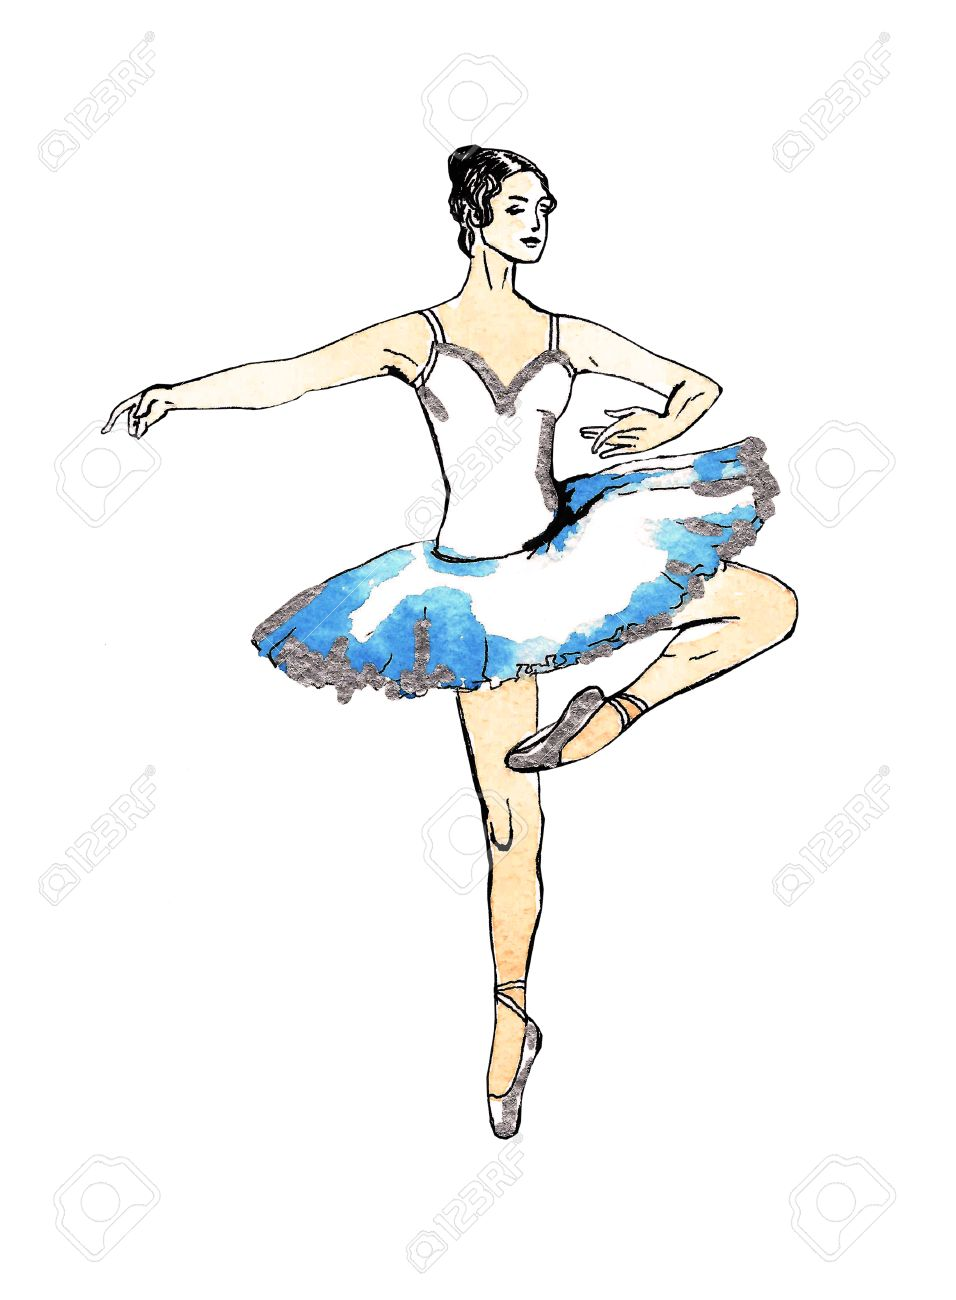 Ballet Dancer Doing Turns Black And Silver Drawing On A Blue Stock Photo Picture And Royalty Free Image Image 51929507